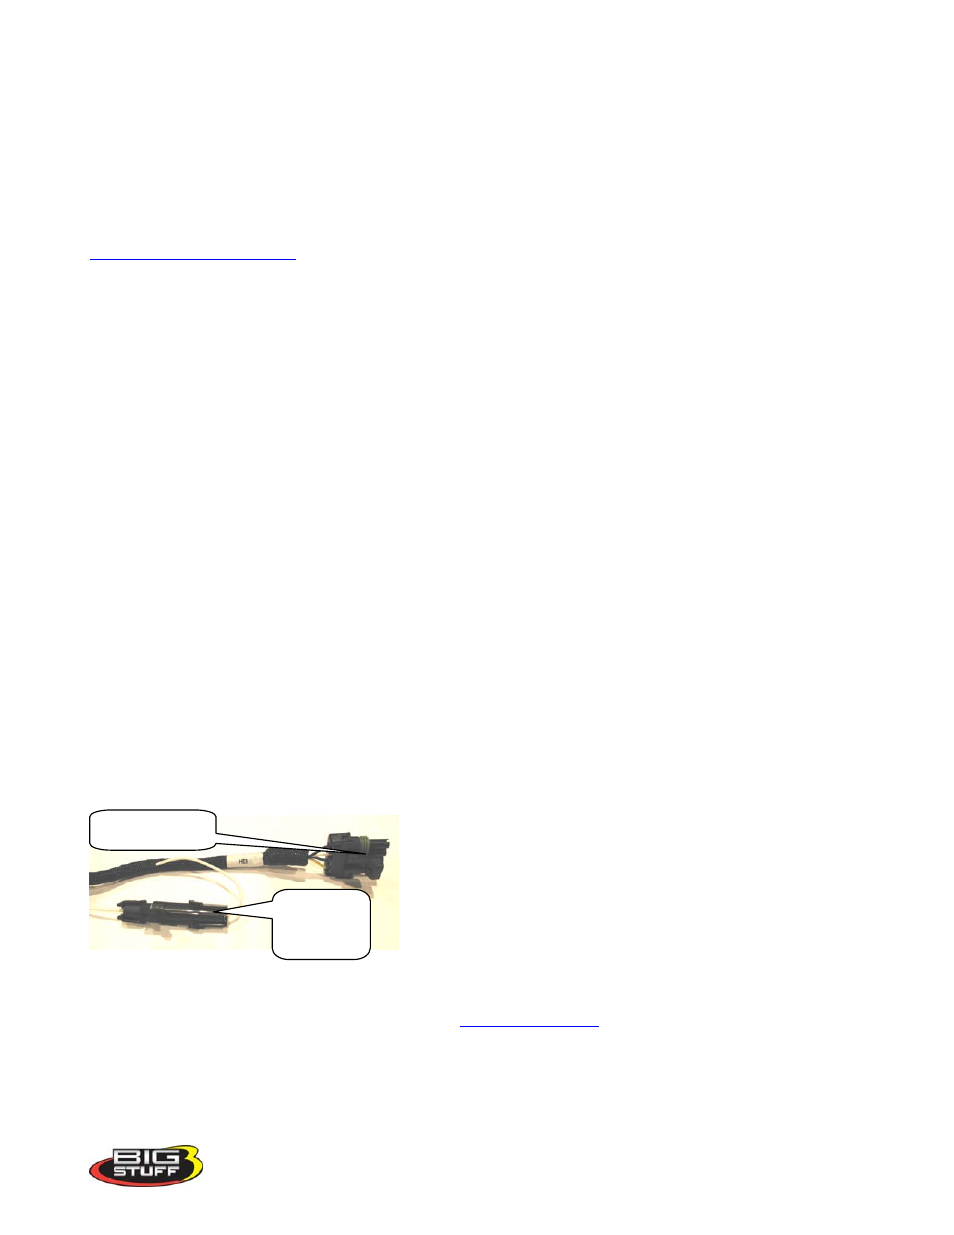 ... 4-way packard connector), Ignition | Precision Turbo and Engine  BigStuff3 GEN3 PRO SEFI System Hardware & BigComm Software User Manual |  Page 18 / 138